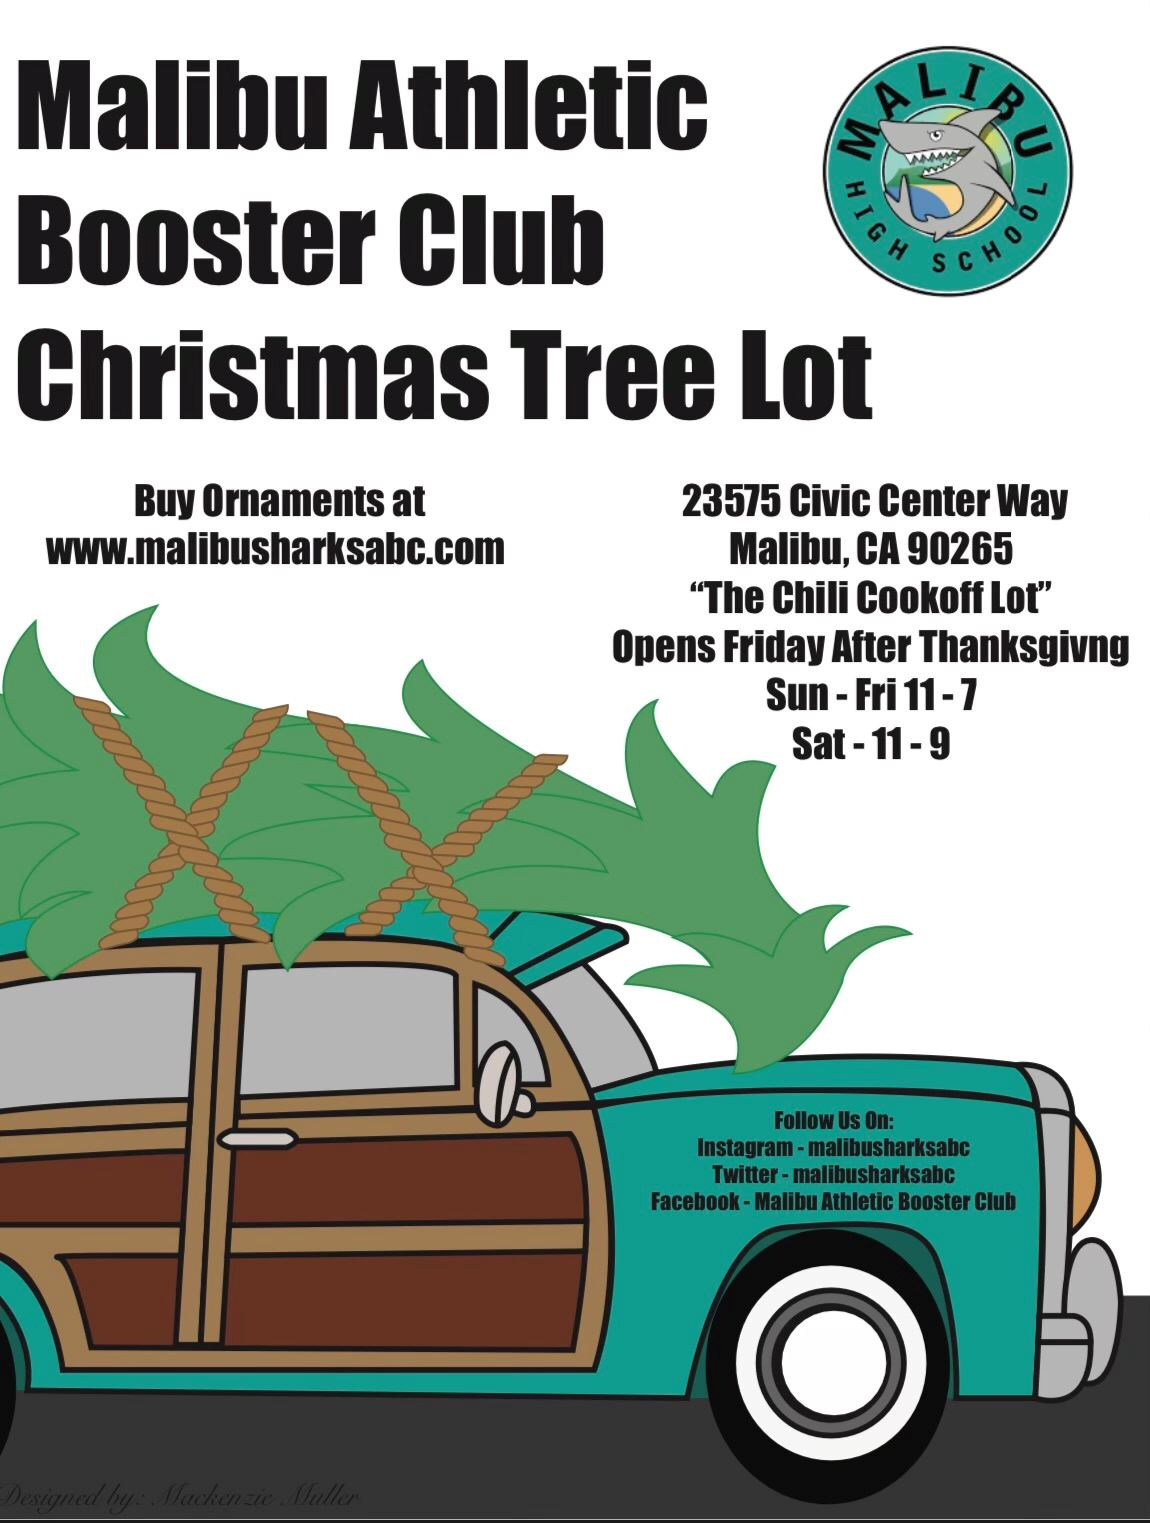 2020 Christmas Tree Lot Hosted by Malibu Athletics Booster Club